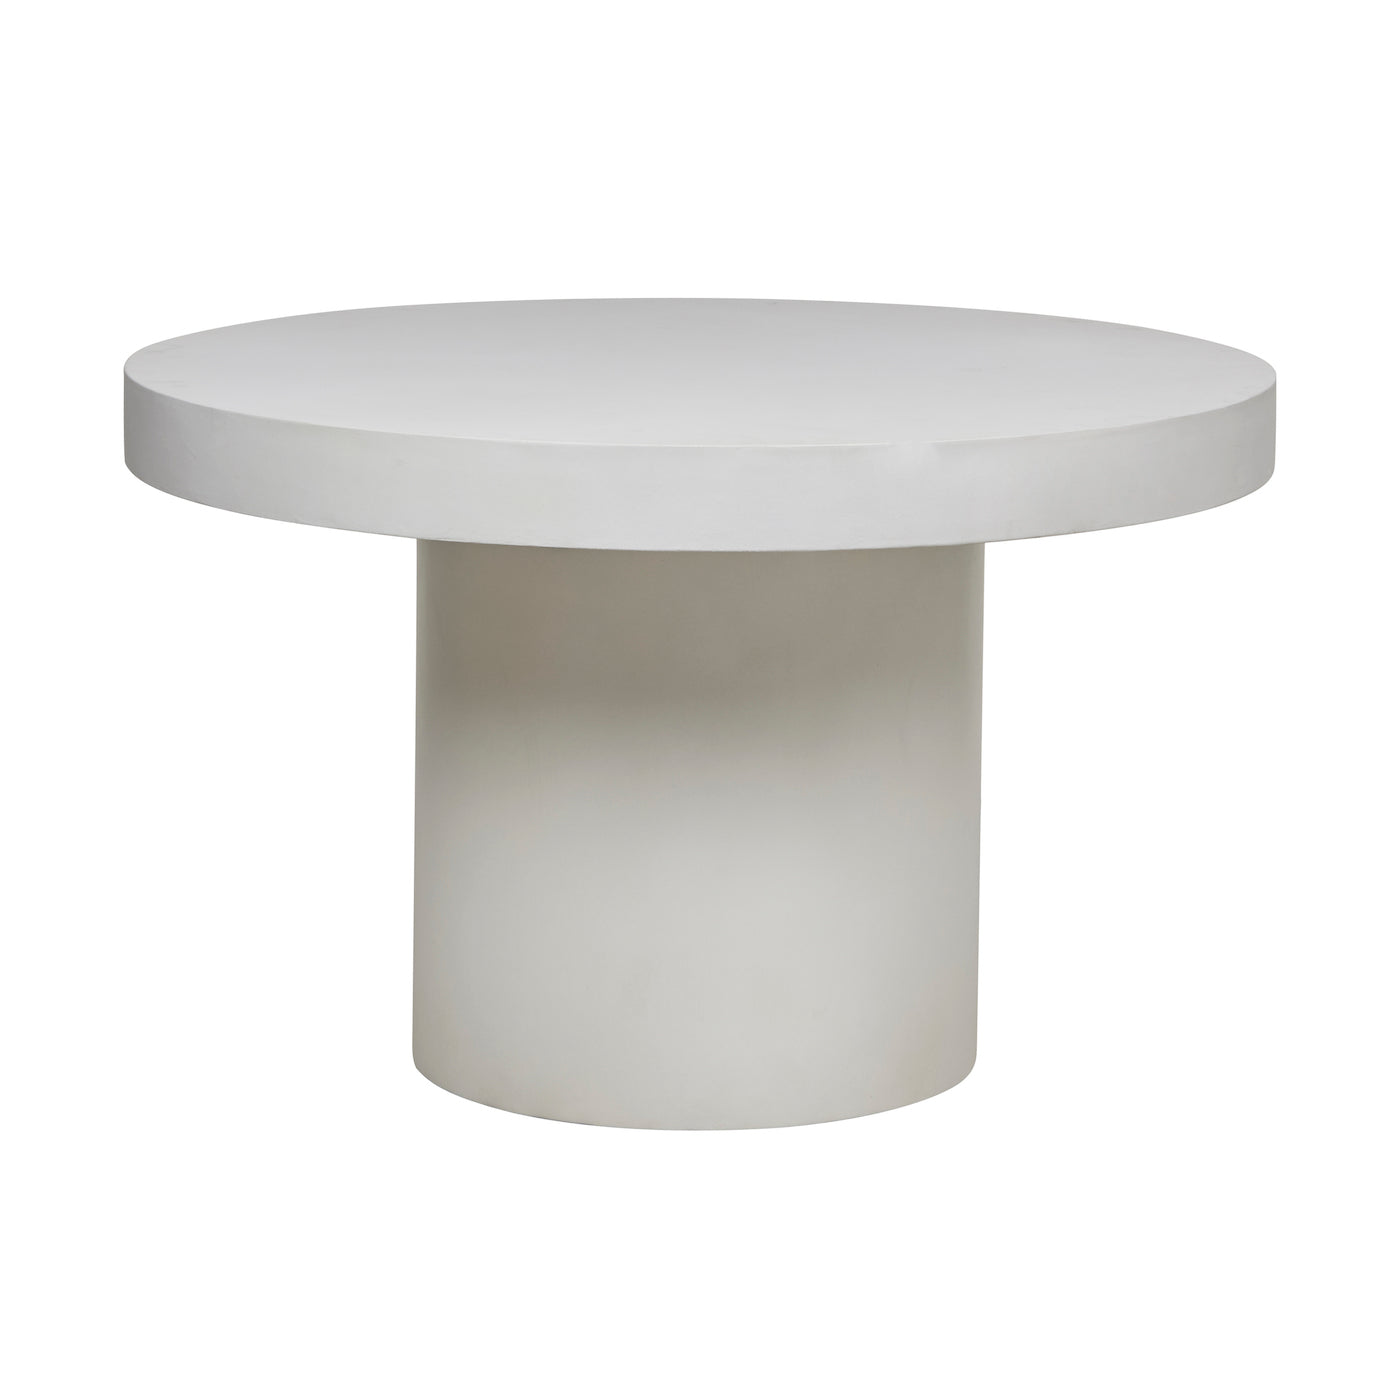 Ossa Round Patio Dining Table | White